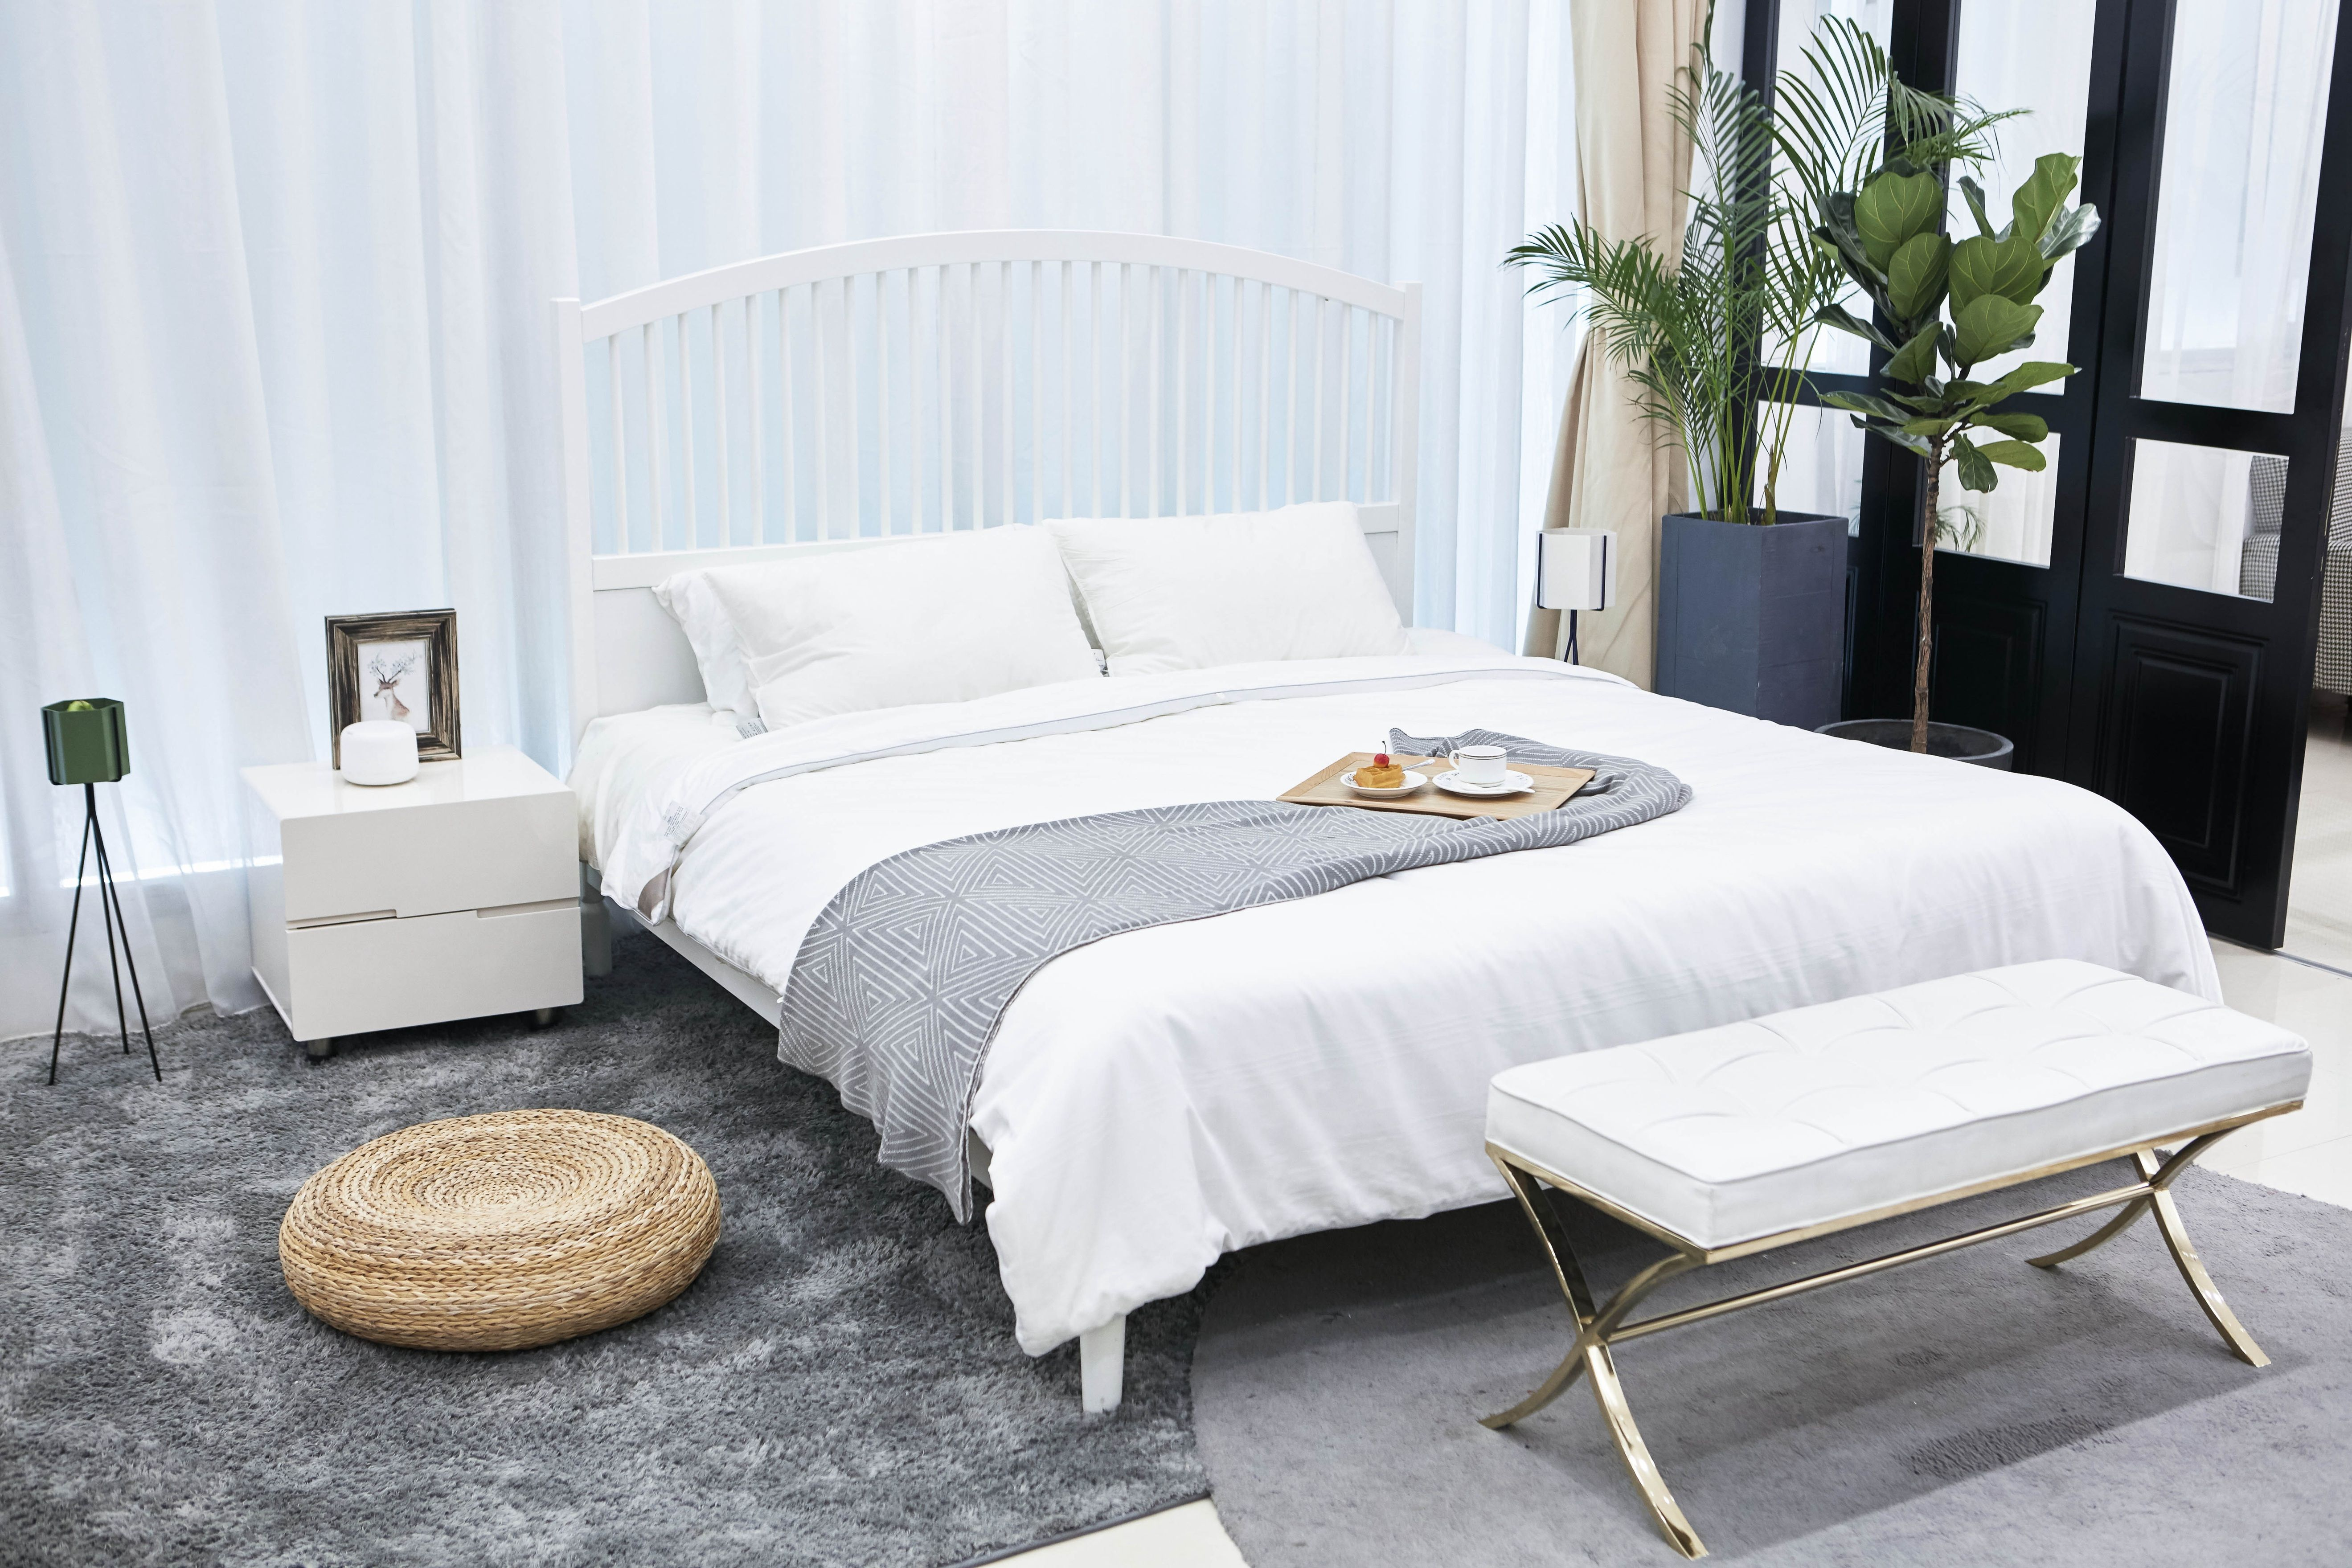 A king-size bed next to a white chest of drawers, a white bench and 2 green plants next to the balcony in a Build To Rent bedroom.